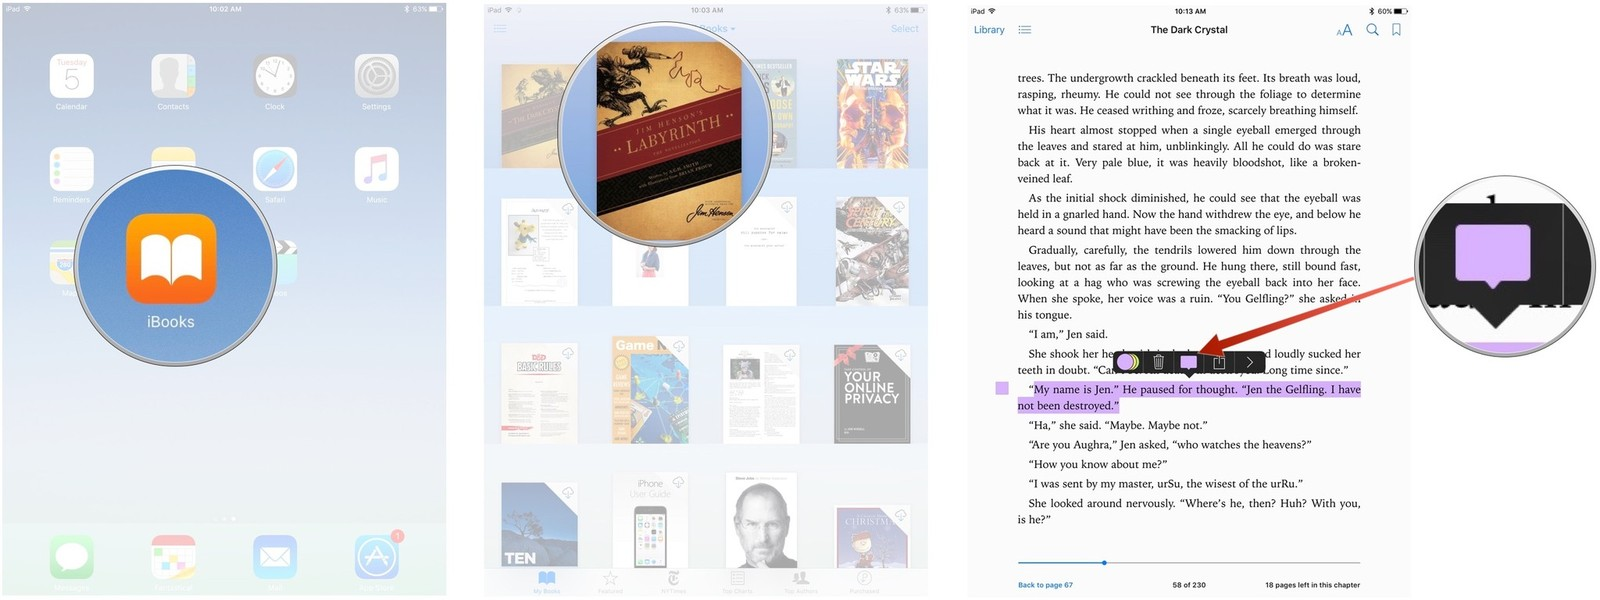 Selecting The Note Options In Ibooks